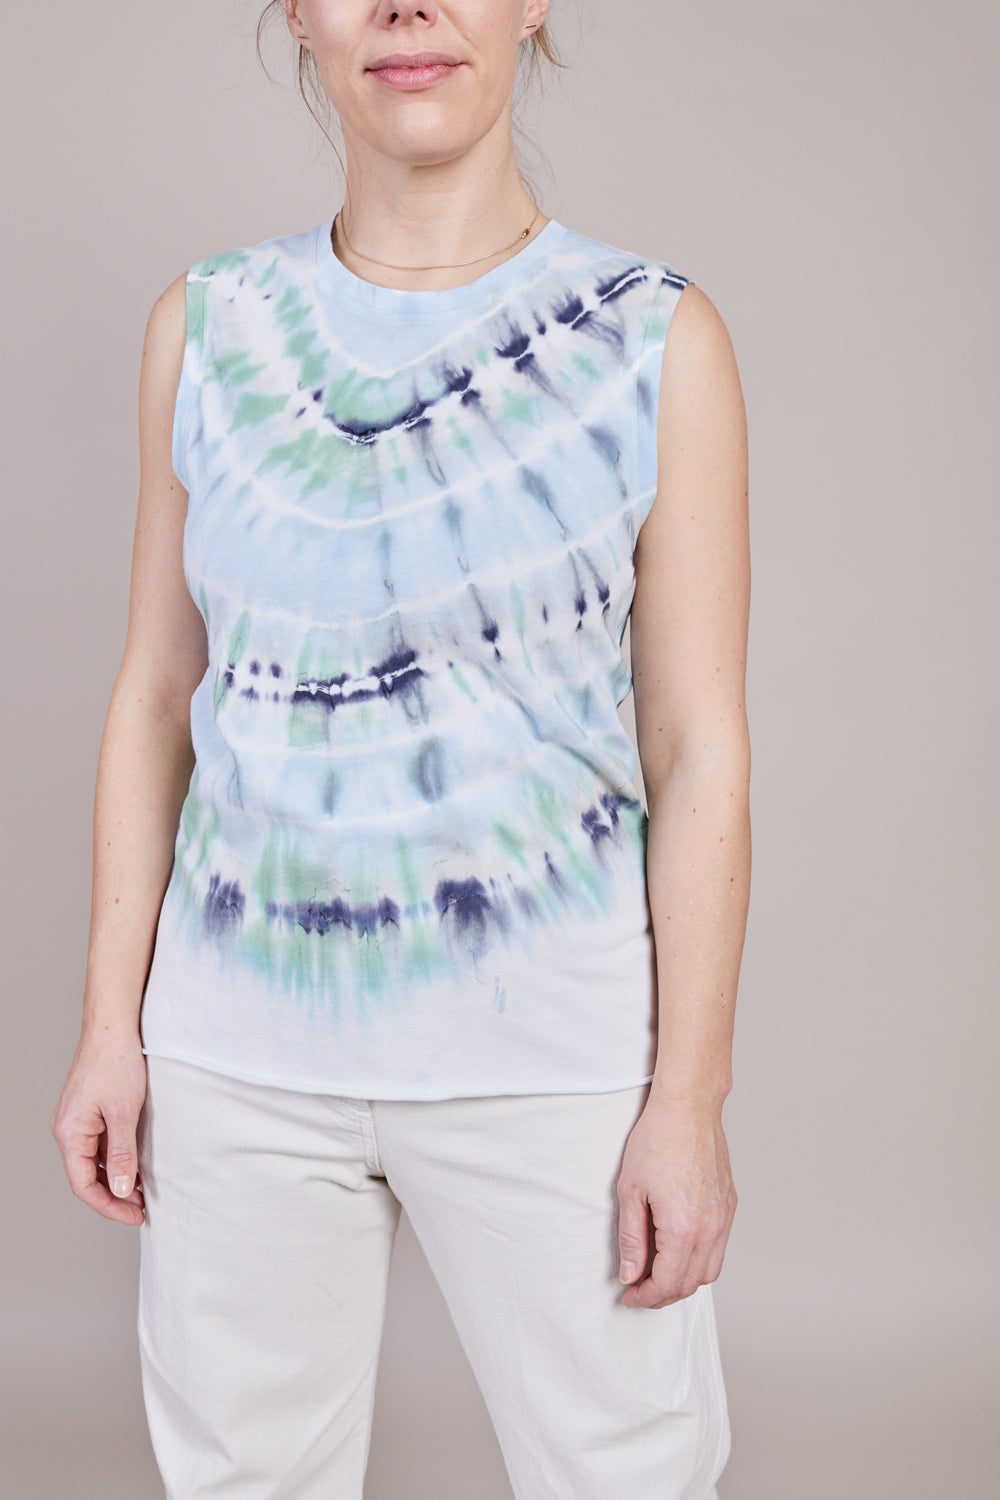 Fitted Muscle Tee in Minty Tie Dye